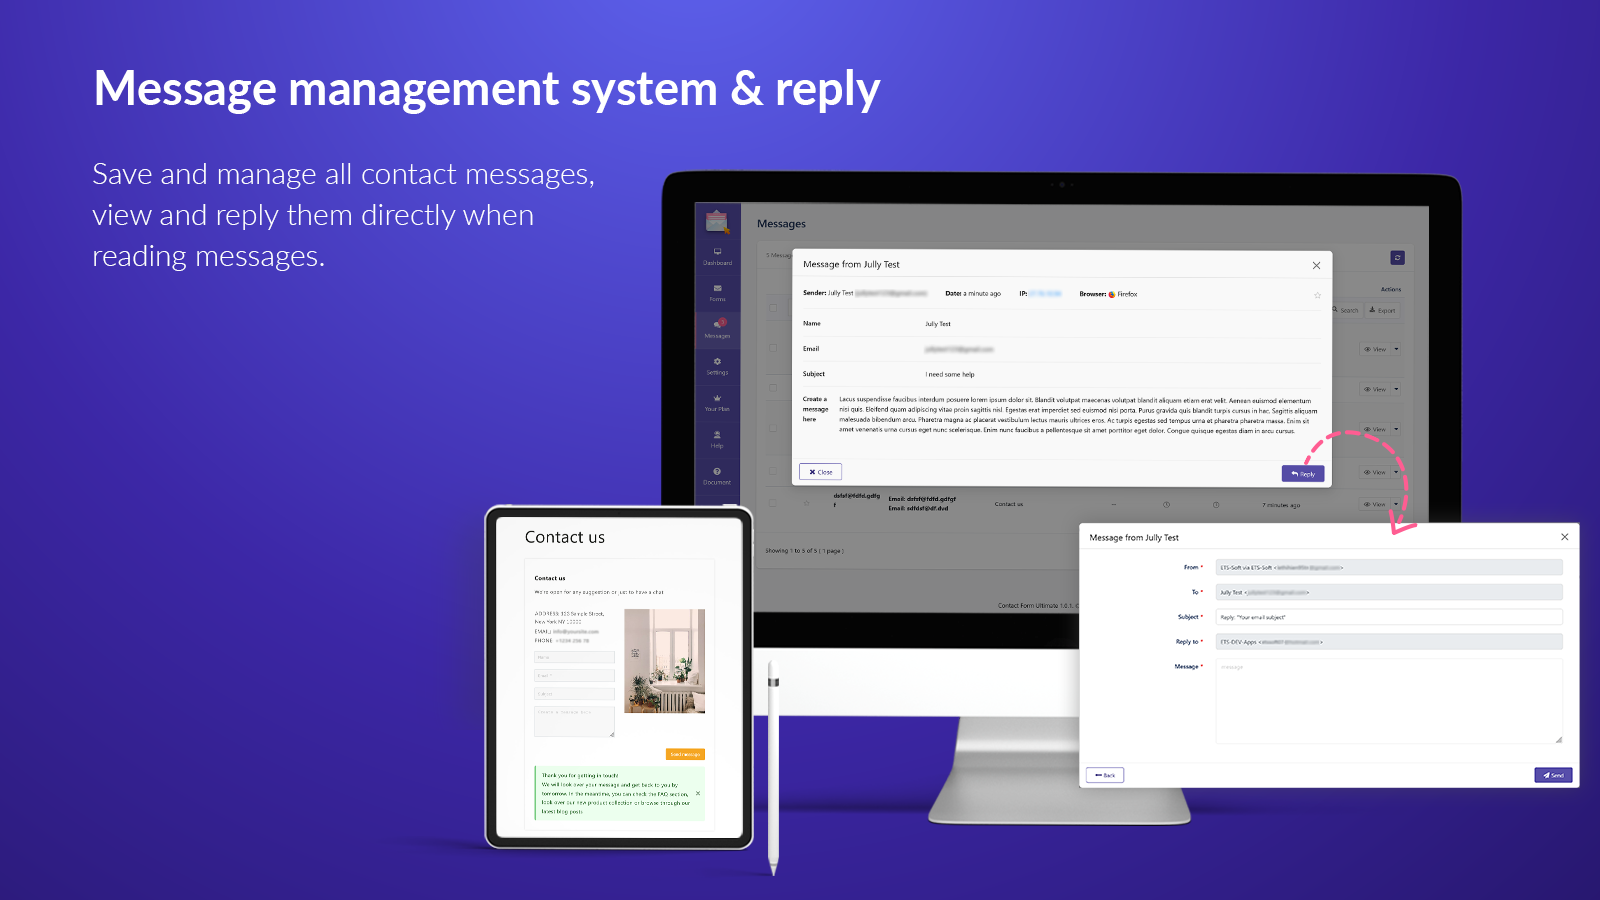 Message management system & reply